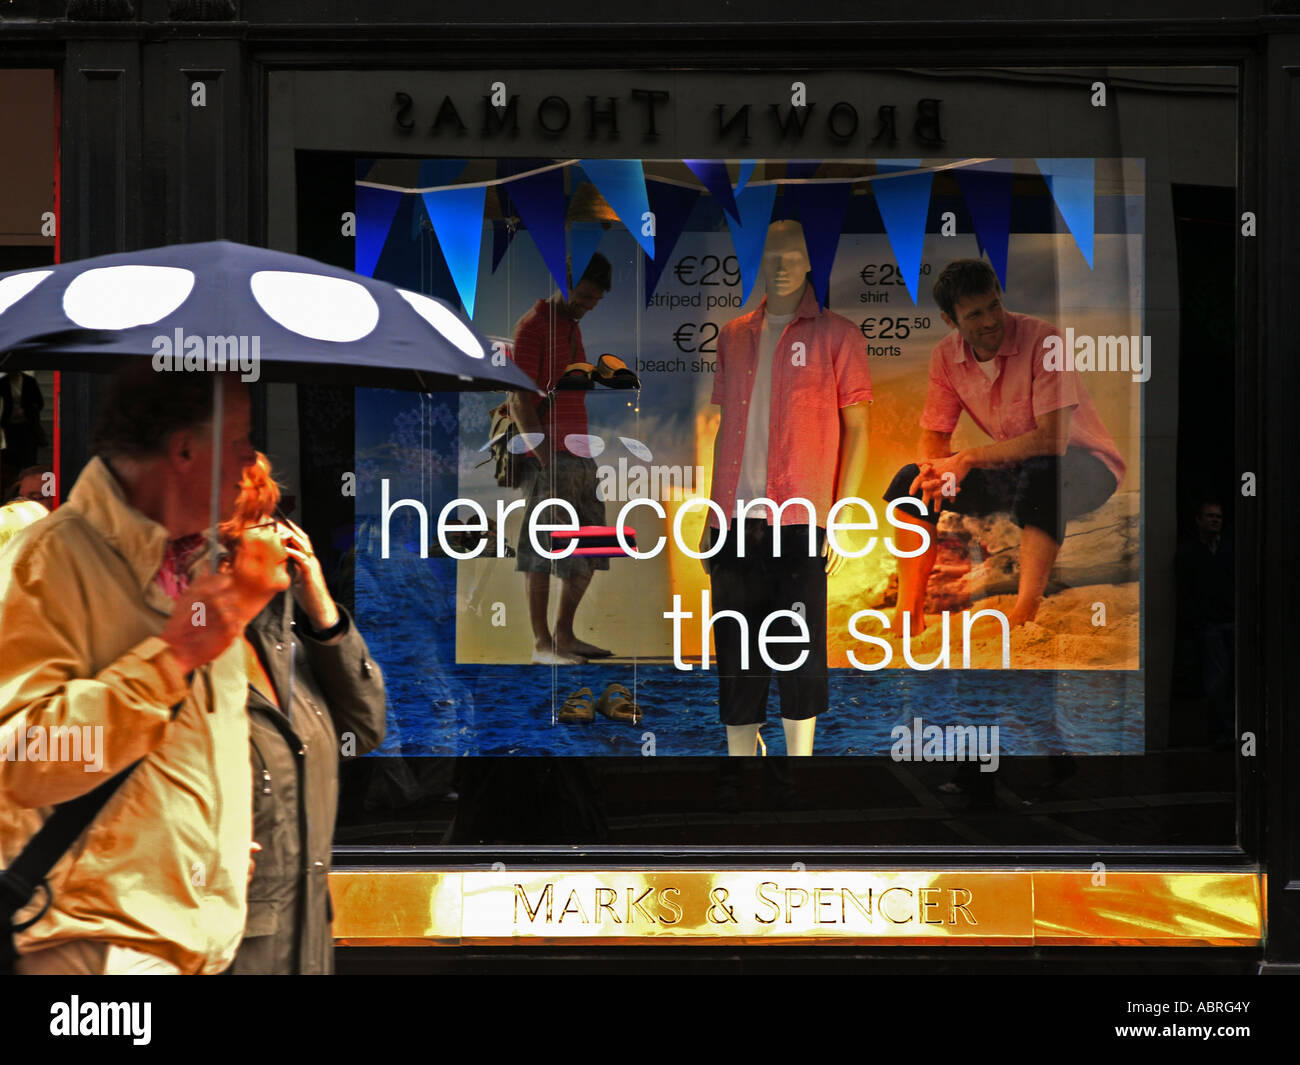 Man with umbrella in front of summer advertising - Stock Image